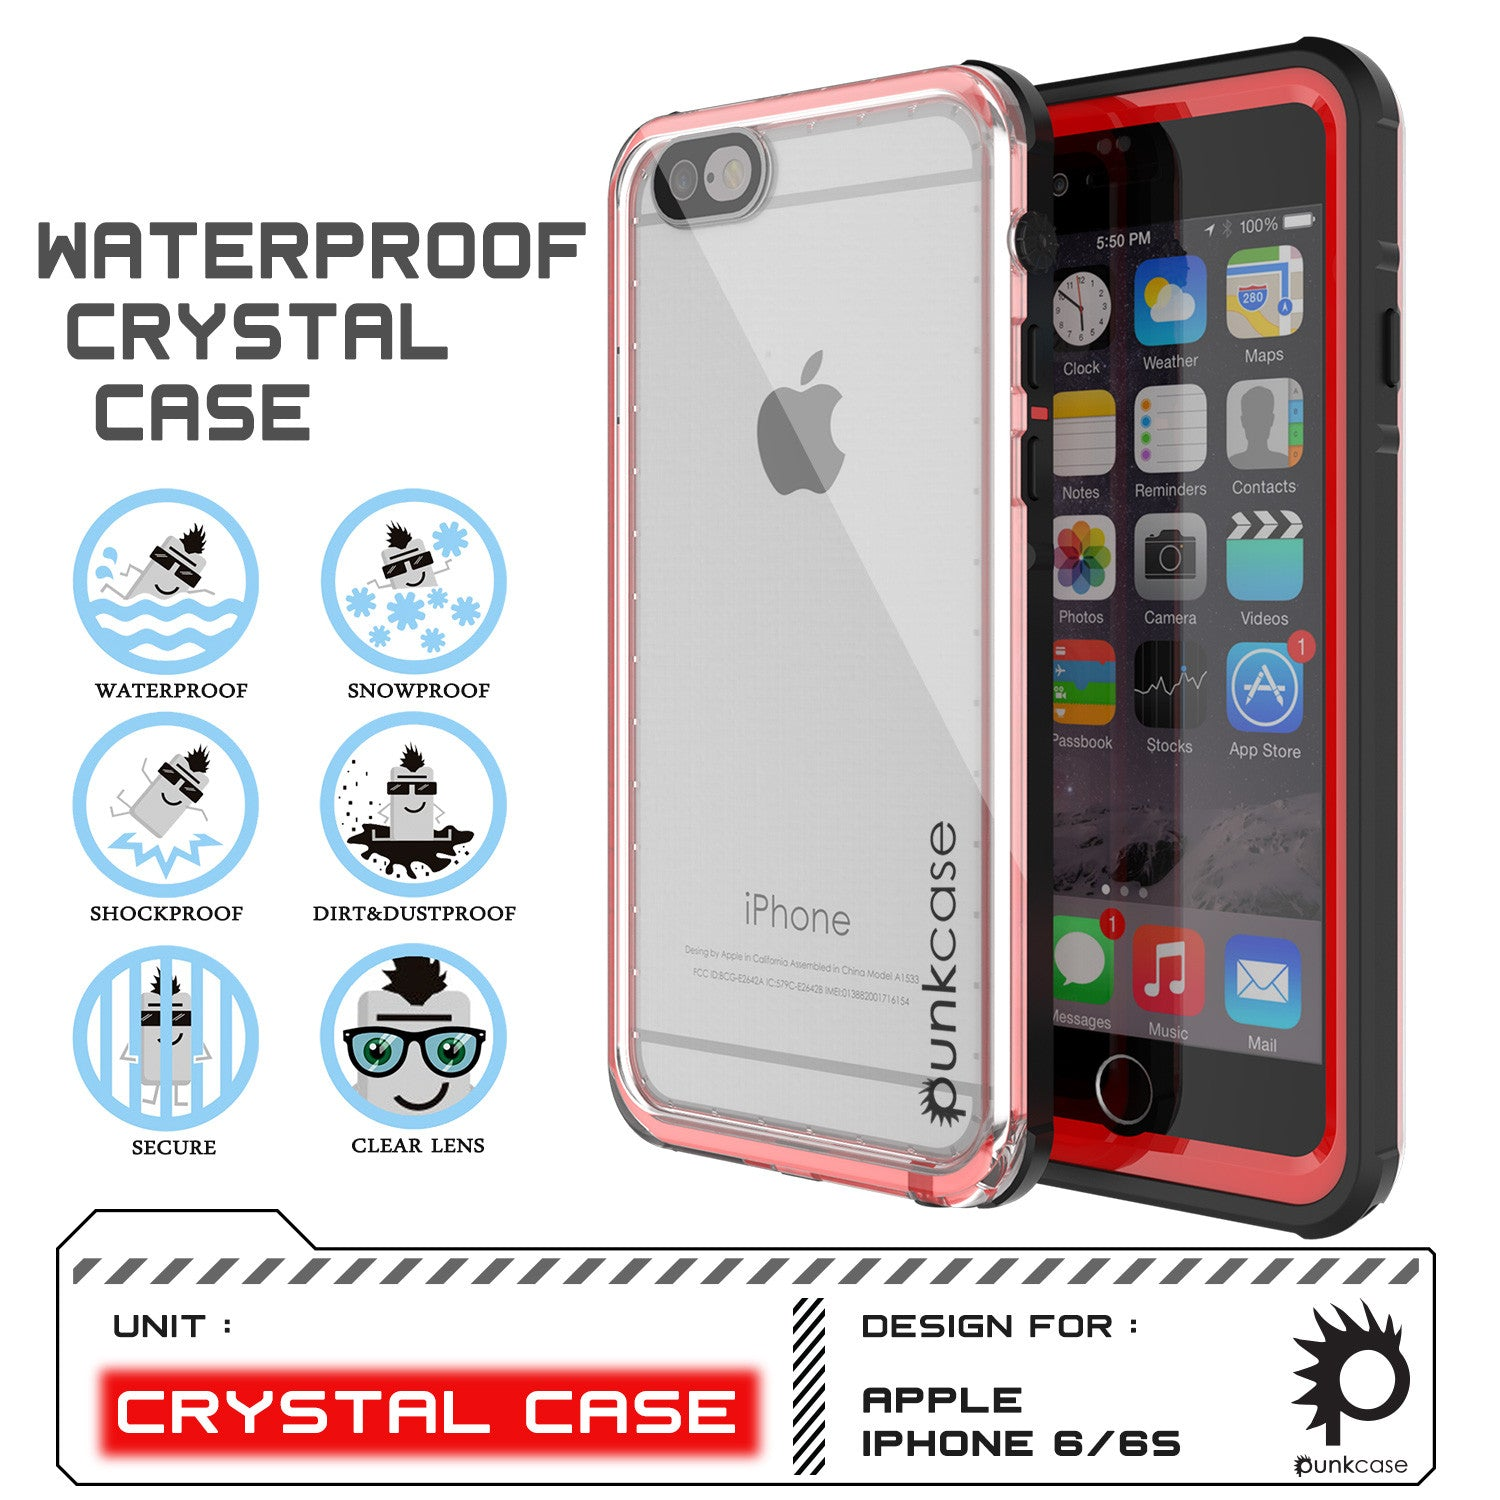 iPhone 6/6S Waterproof Case, PUNKcase CRYSTAL Red W/ Attached Screen Protector  | Warranty